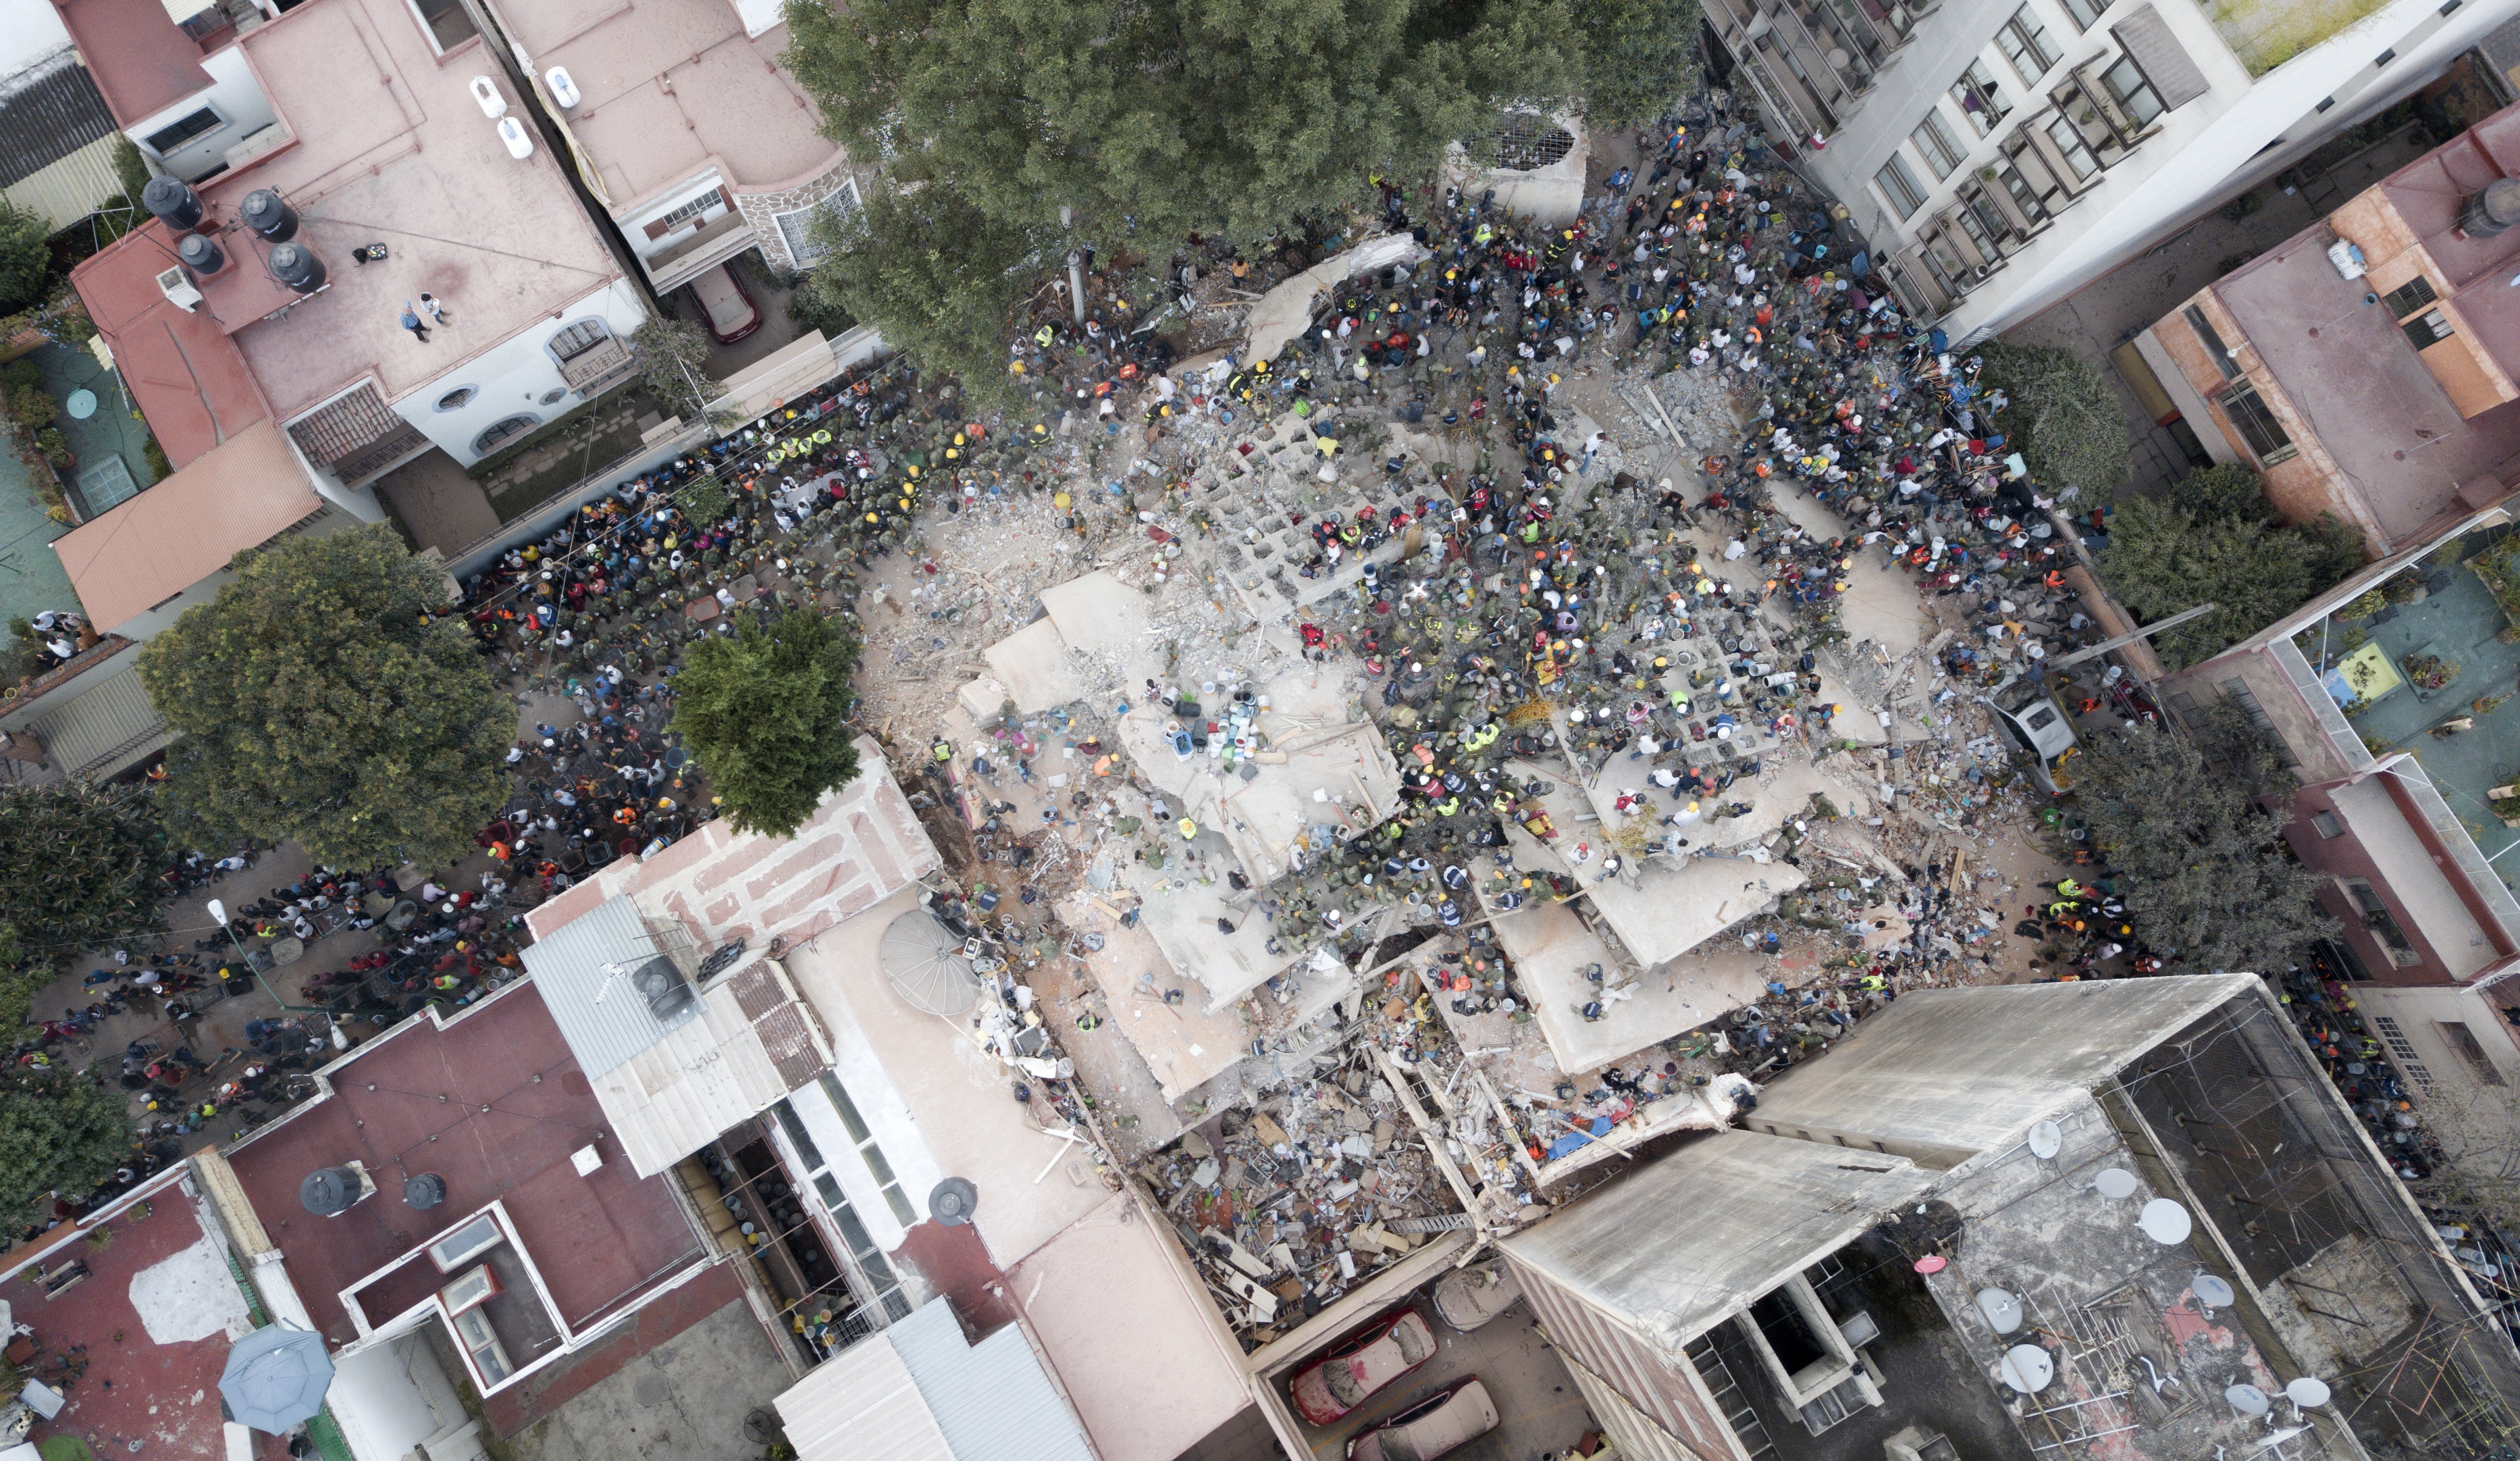 Slide 1 of 42: Rescue workers and volunteers search for survivors on a collapsed building the Del Valle neighborhood in Mexico City, Tuesday Sept. 19, 2017. A magnitude 7.1 earthquake has stunned central Mexico, killing more than 100 people as buildings collapsed in plumes of dust. (AP Photo/Miguel Tovar)